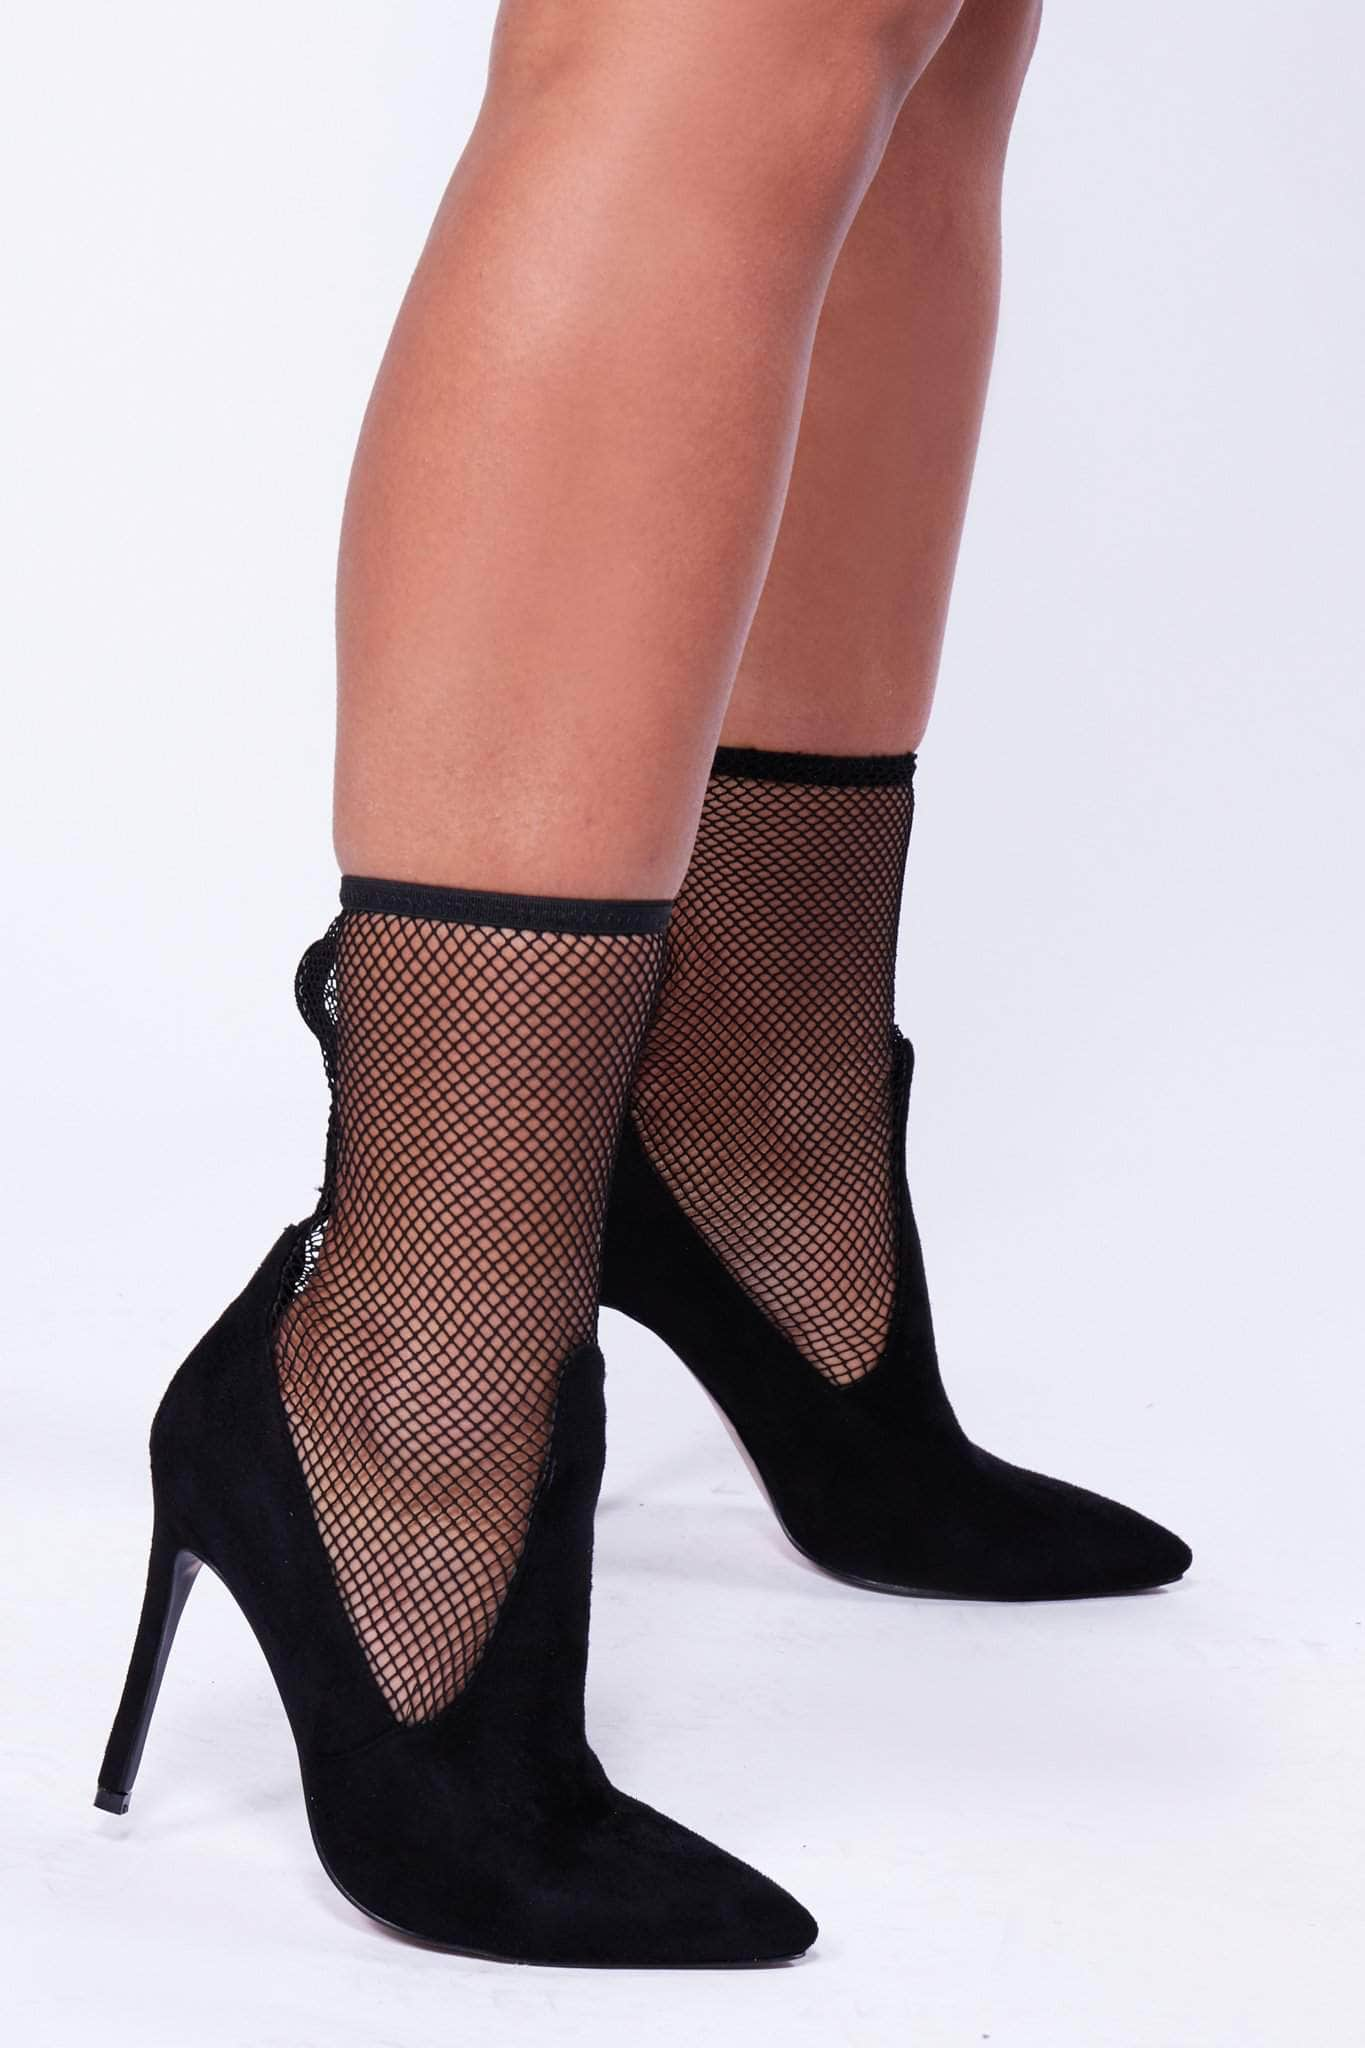 Black Suede & Fish Net Stiletto Heels